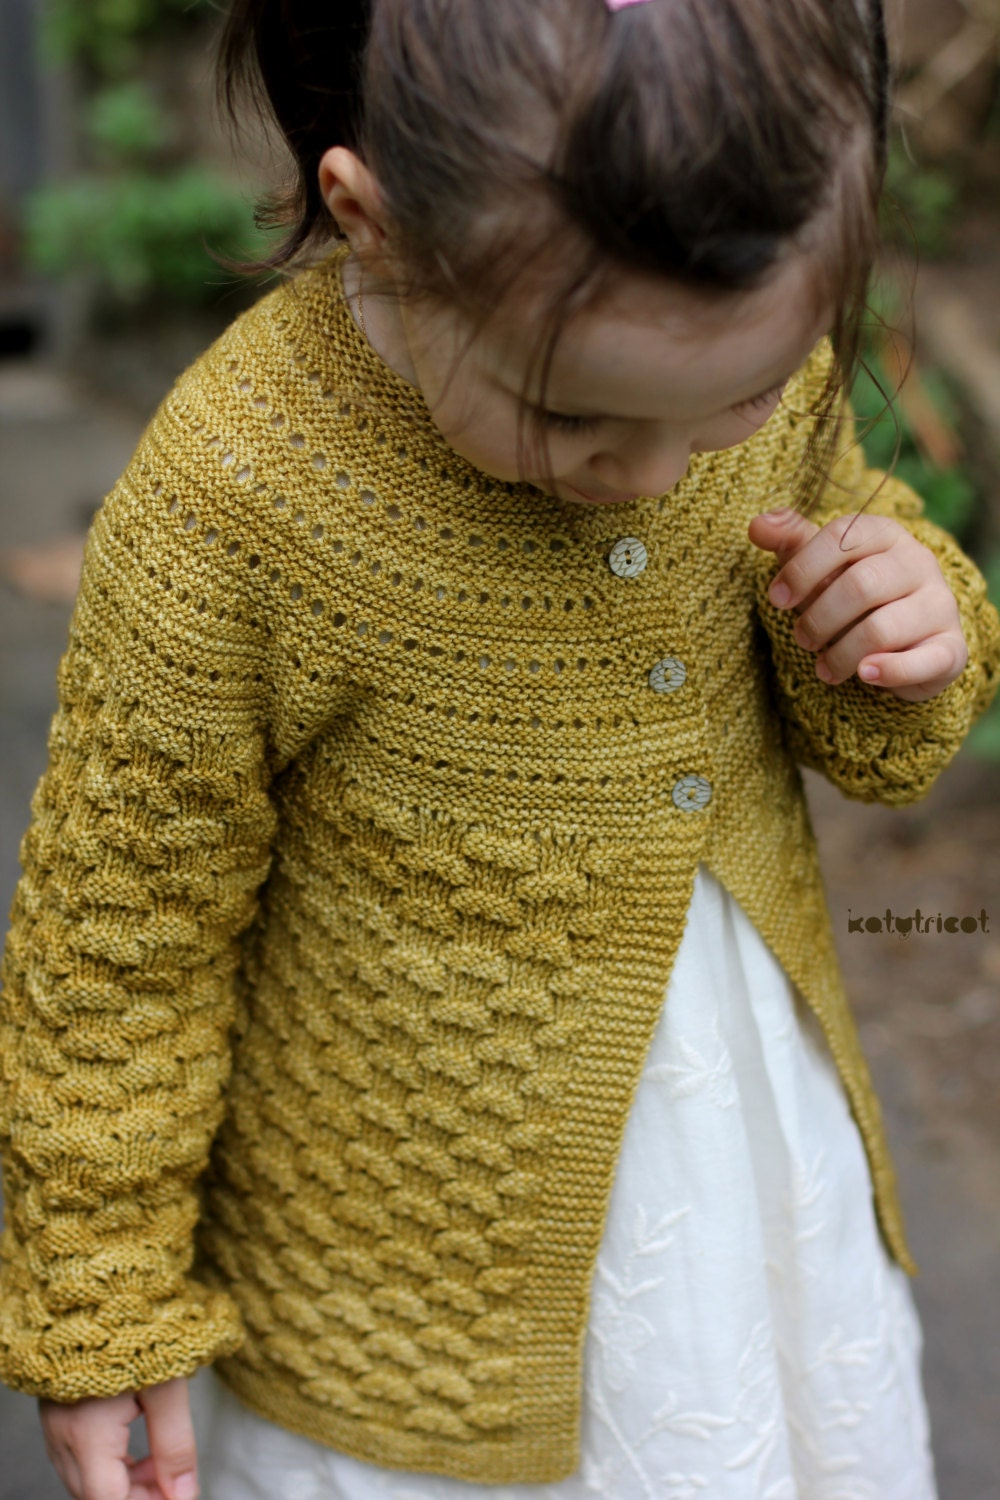 Knitting Terminology Yo : Knitting pattern quot elisa cardigan months to yo from